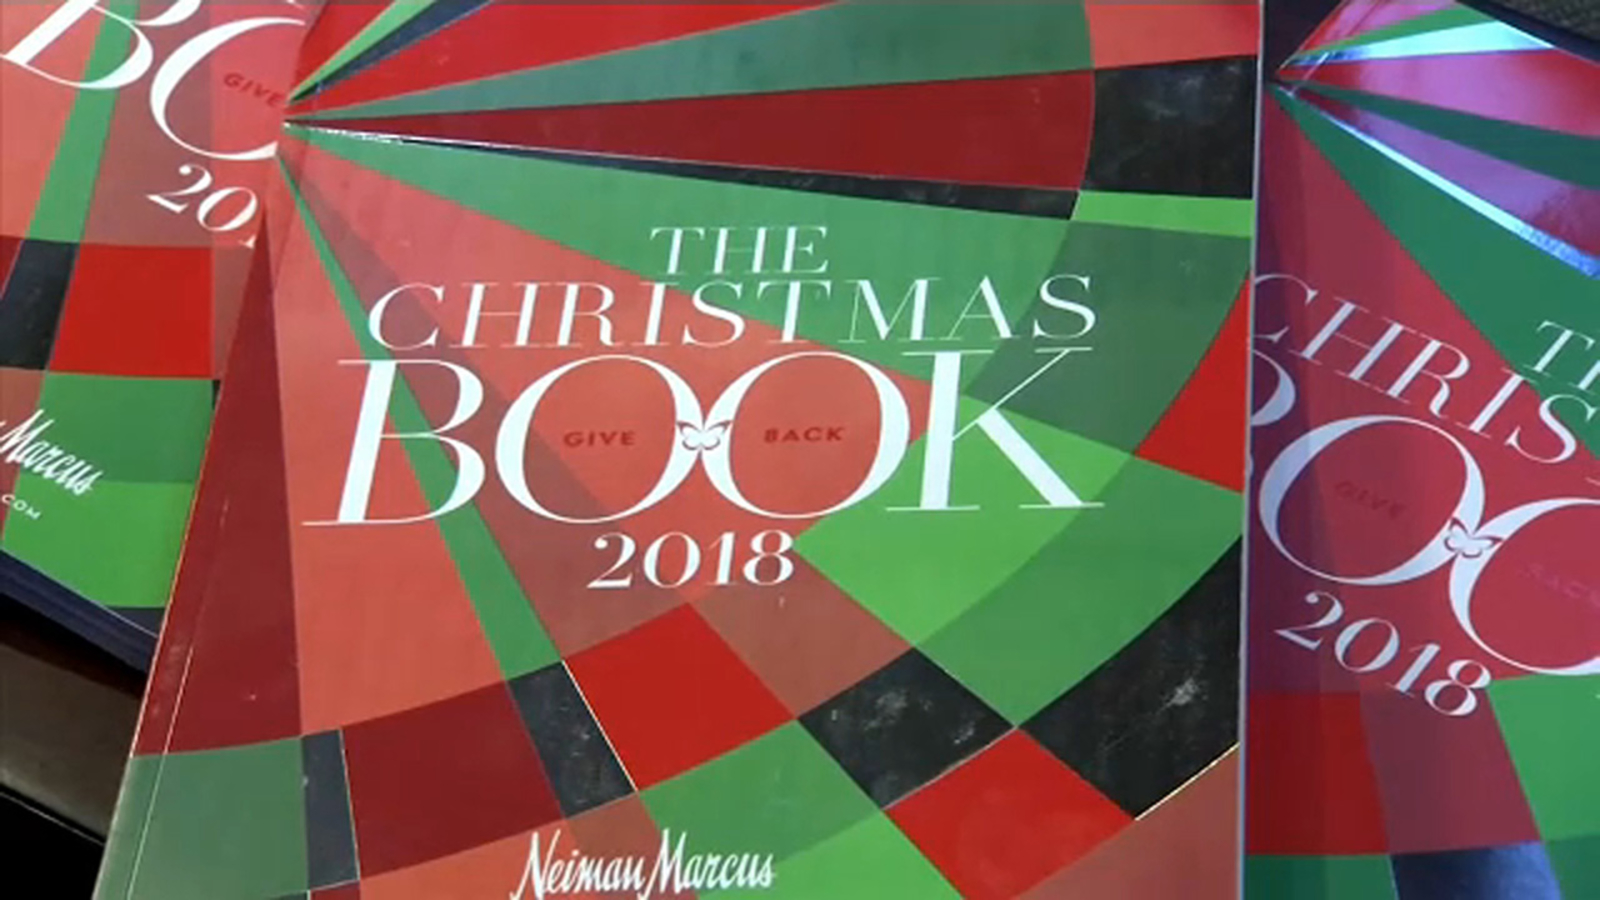 Neiman Marcus Unveils Gift Ideas In The Christmas Book 2018 Abc7ny